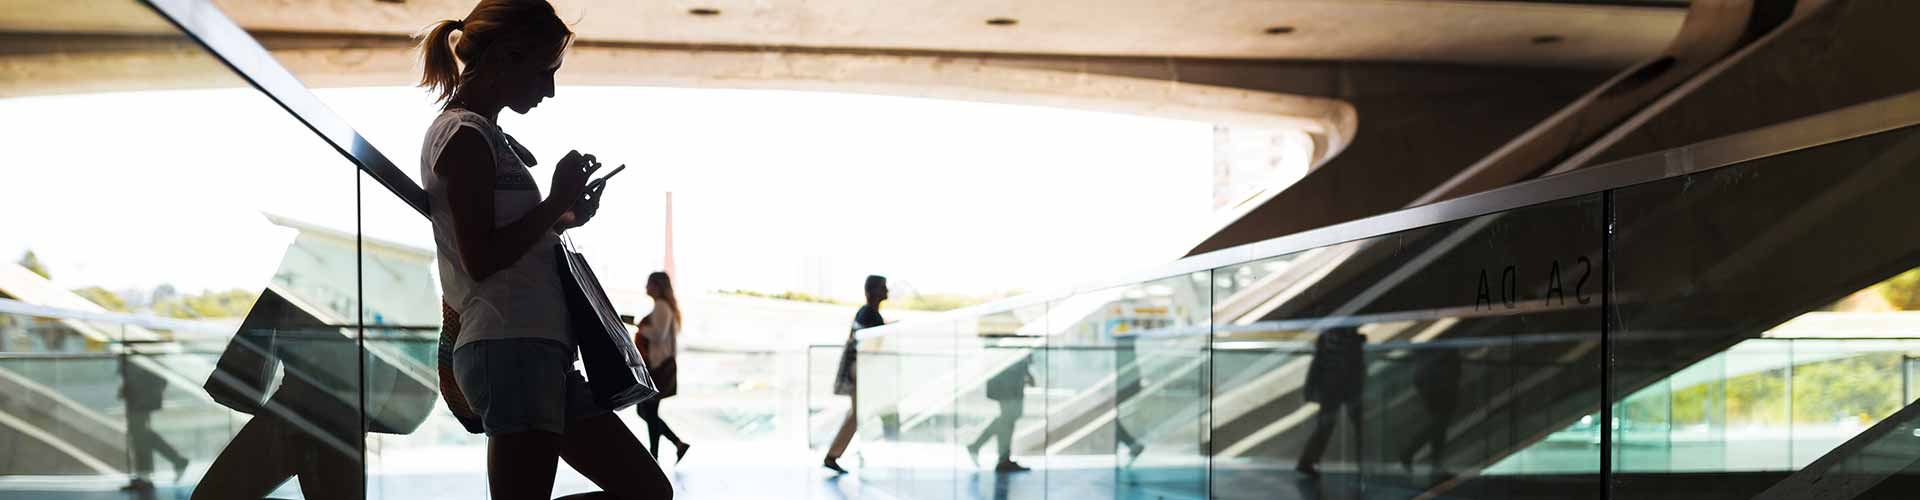 Digital Transformation Starts with Customer Experience…or Does It?